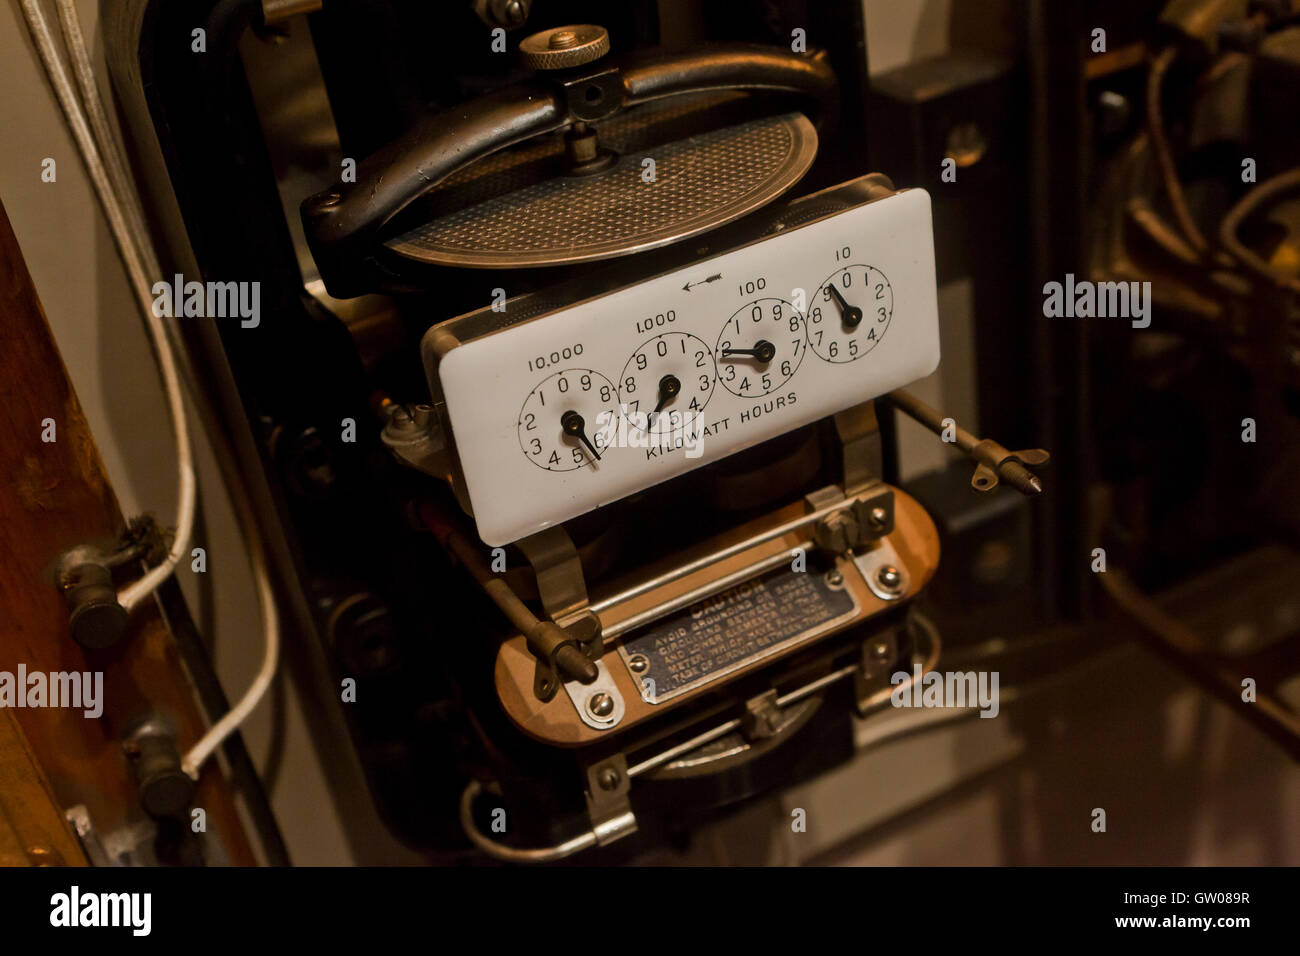 Electric Meter Stock Photos Images Alamy Electrical Wiring Residential Usa Vintage Image